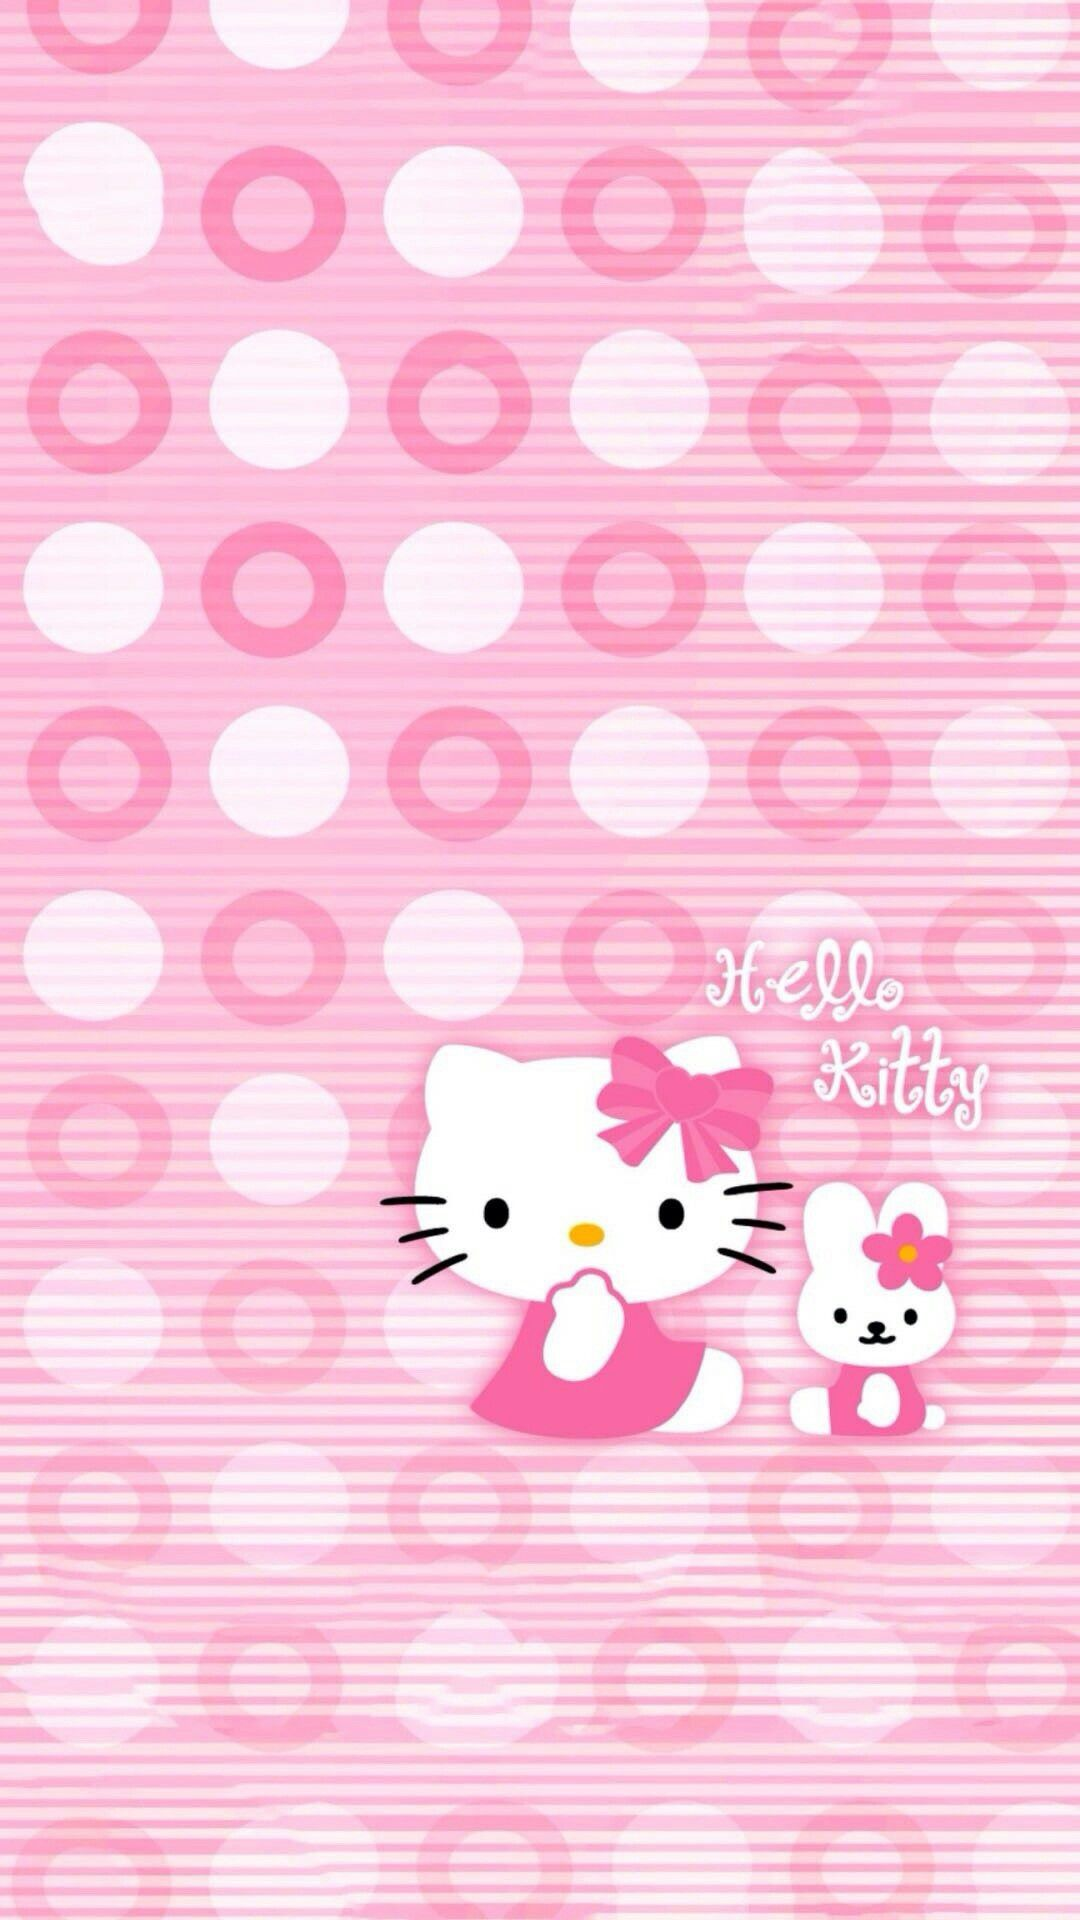 Pin By Xandra Funk On Hello Kitty Backgrounds - Pinterest